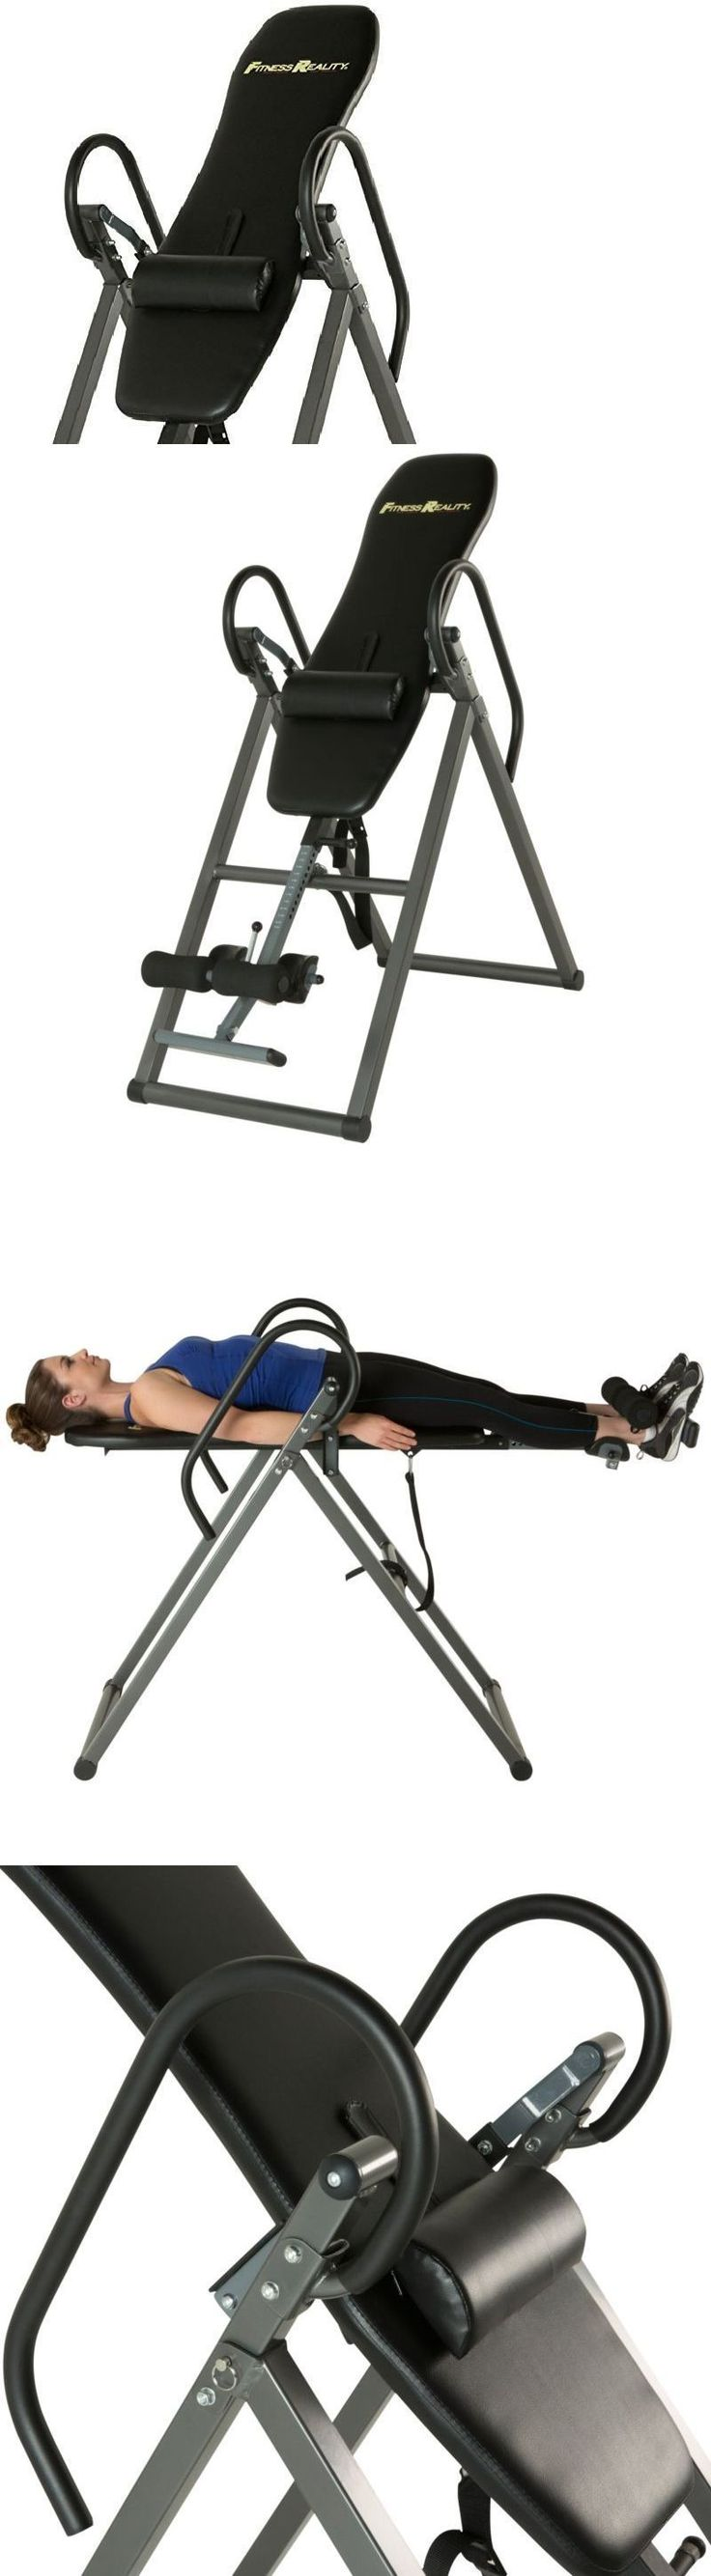 Inversion Tables 112954: Foldable Inversion Table W Lumbar Pillow Therapeutic Exercise Back Pain Relief -> BUY IT NOW ONLY: $152.29 on eBay! #InversionTables